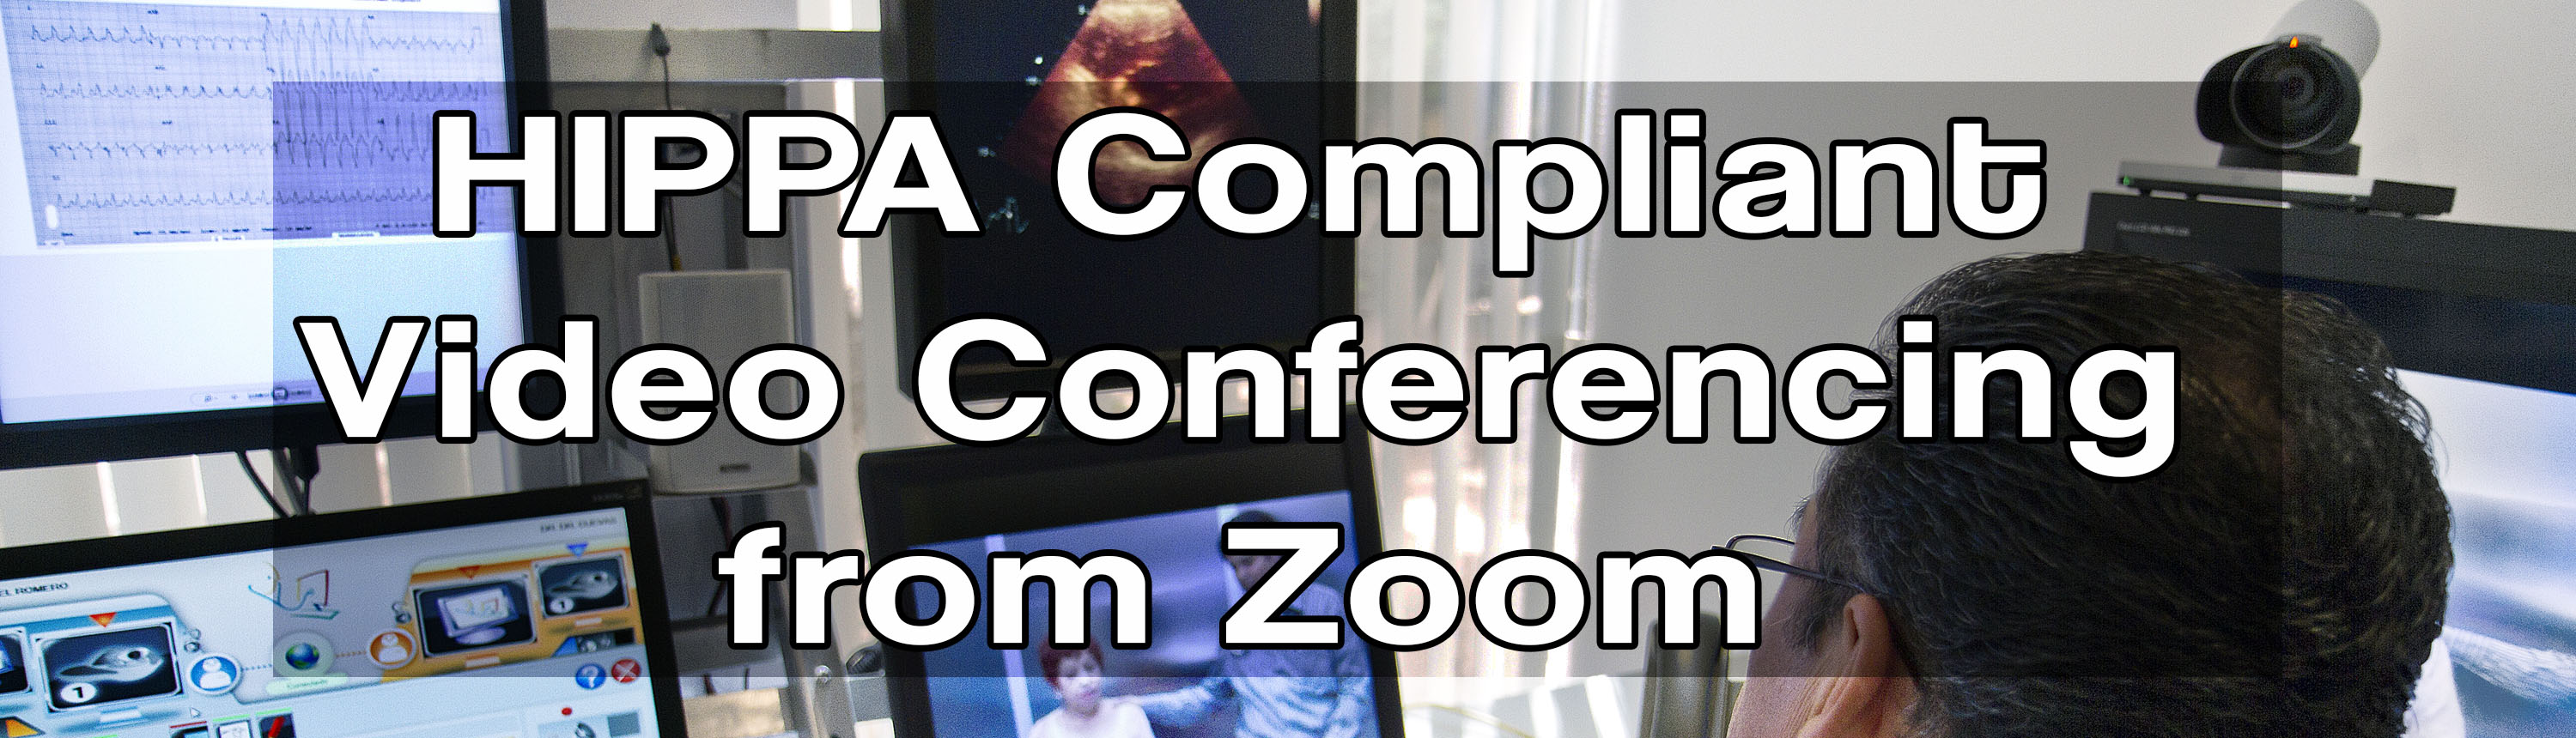 HIPAA_Compliant_Video_Conferencing_from_Zoom